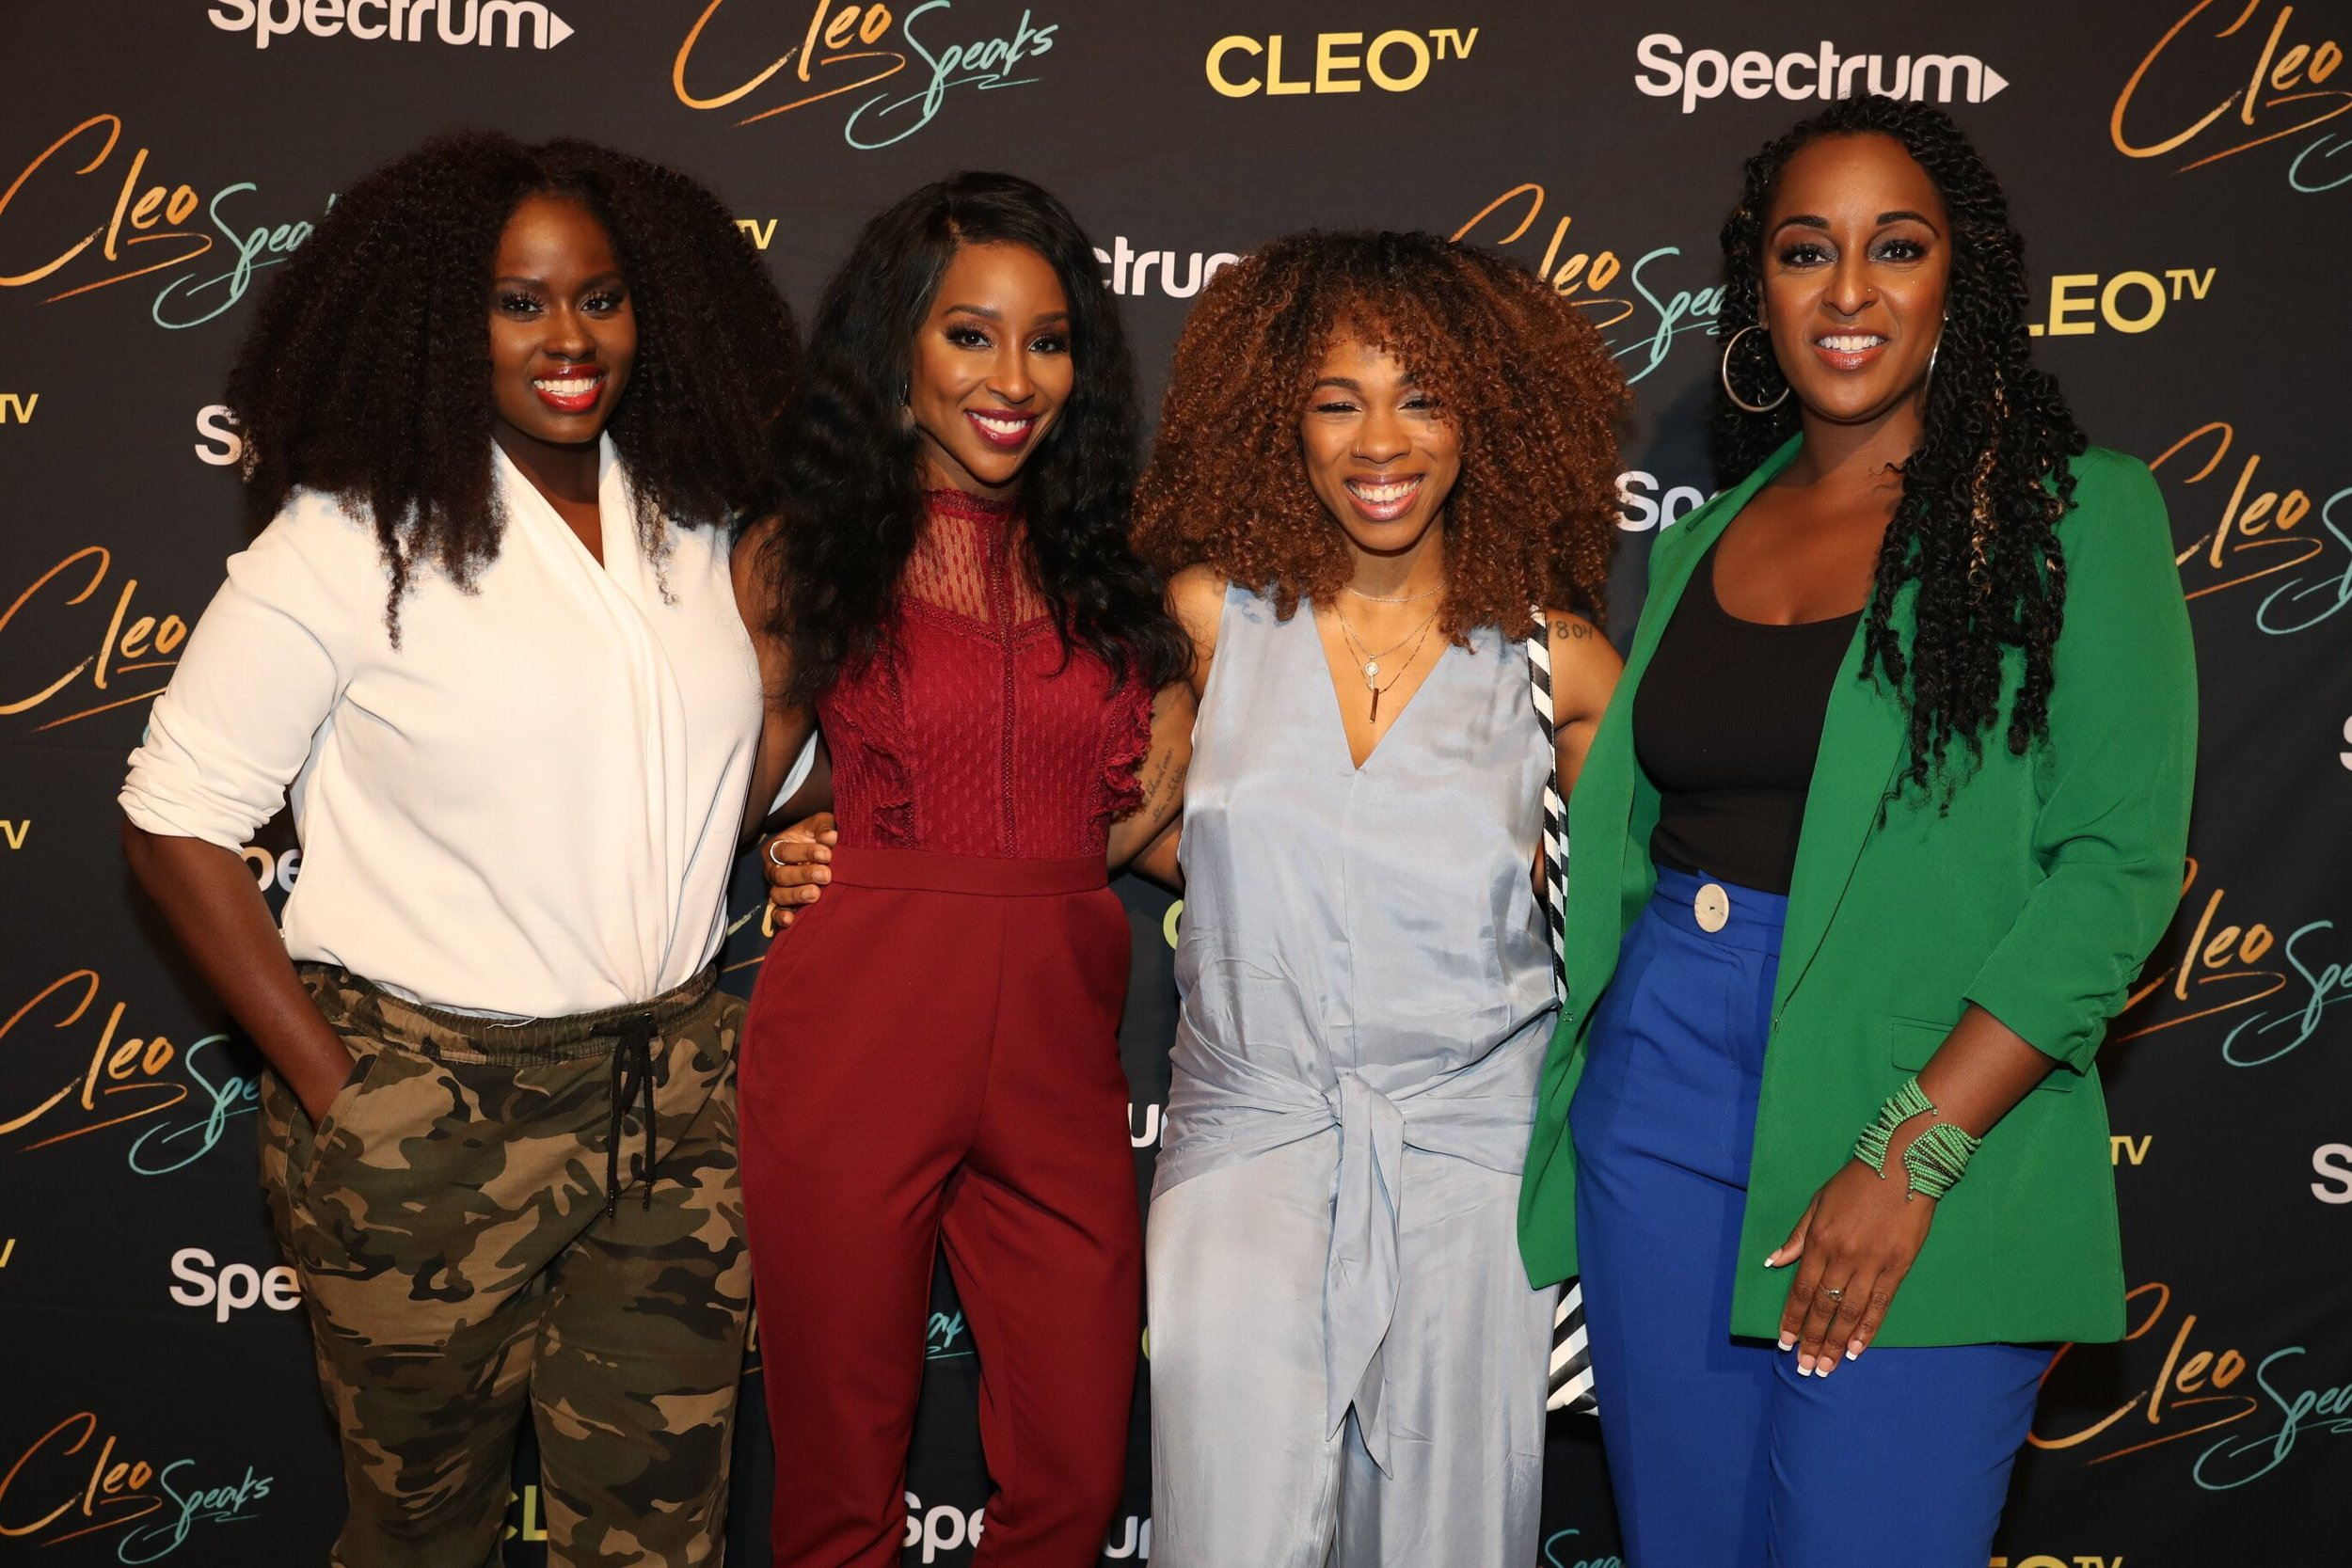 L-R: Author and CEO Charreah K. Jackson, Founder of    xoNecole.com    Necole Kane, Co-Host of Sway in the Morning and the evening's moderator Tracy Garraud, and The Griot Deputy Editor Natasha Alford kick off CLEO TV and Charter's inaugural CLEO SPEAKS Tour in NYC.